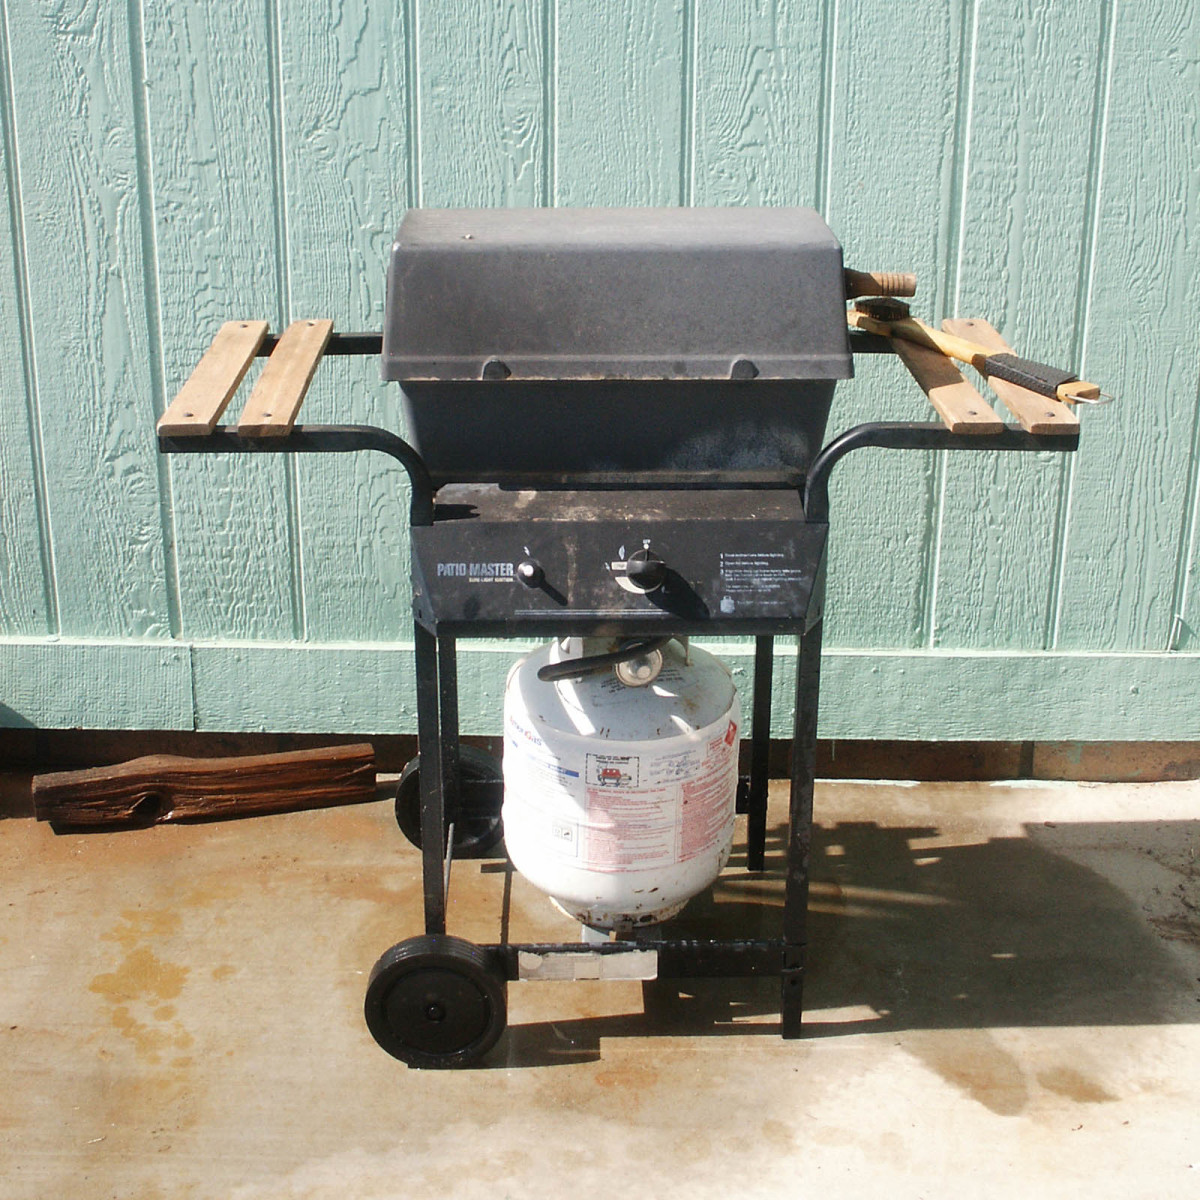 Grill for cooking after a hurricane when there is no electric